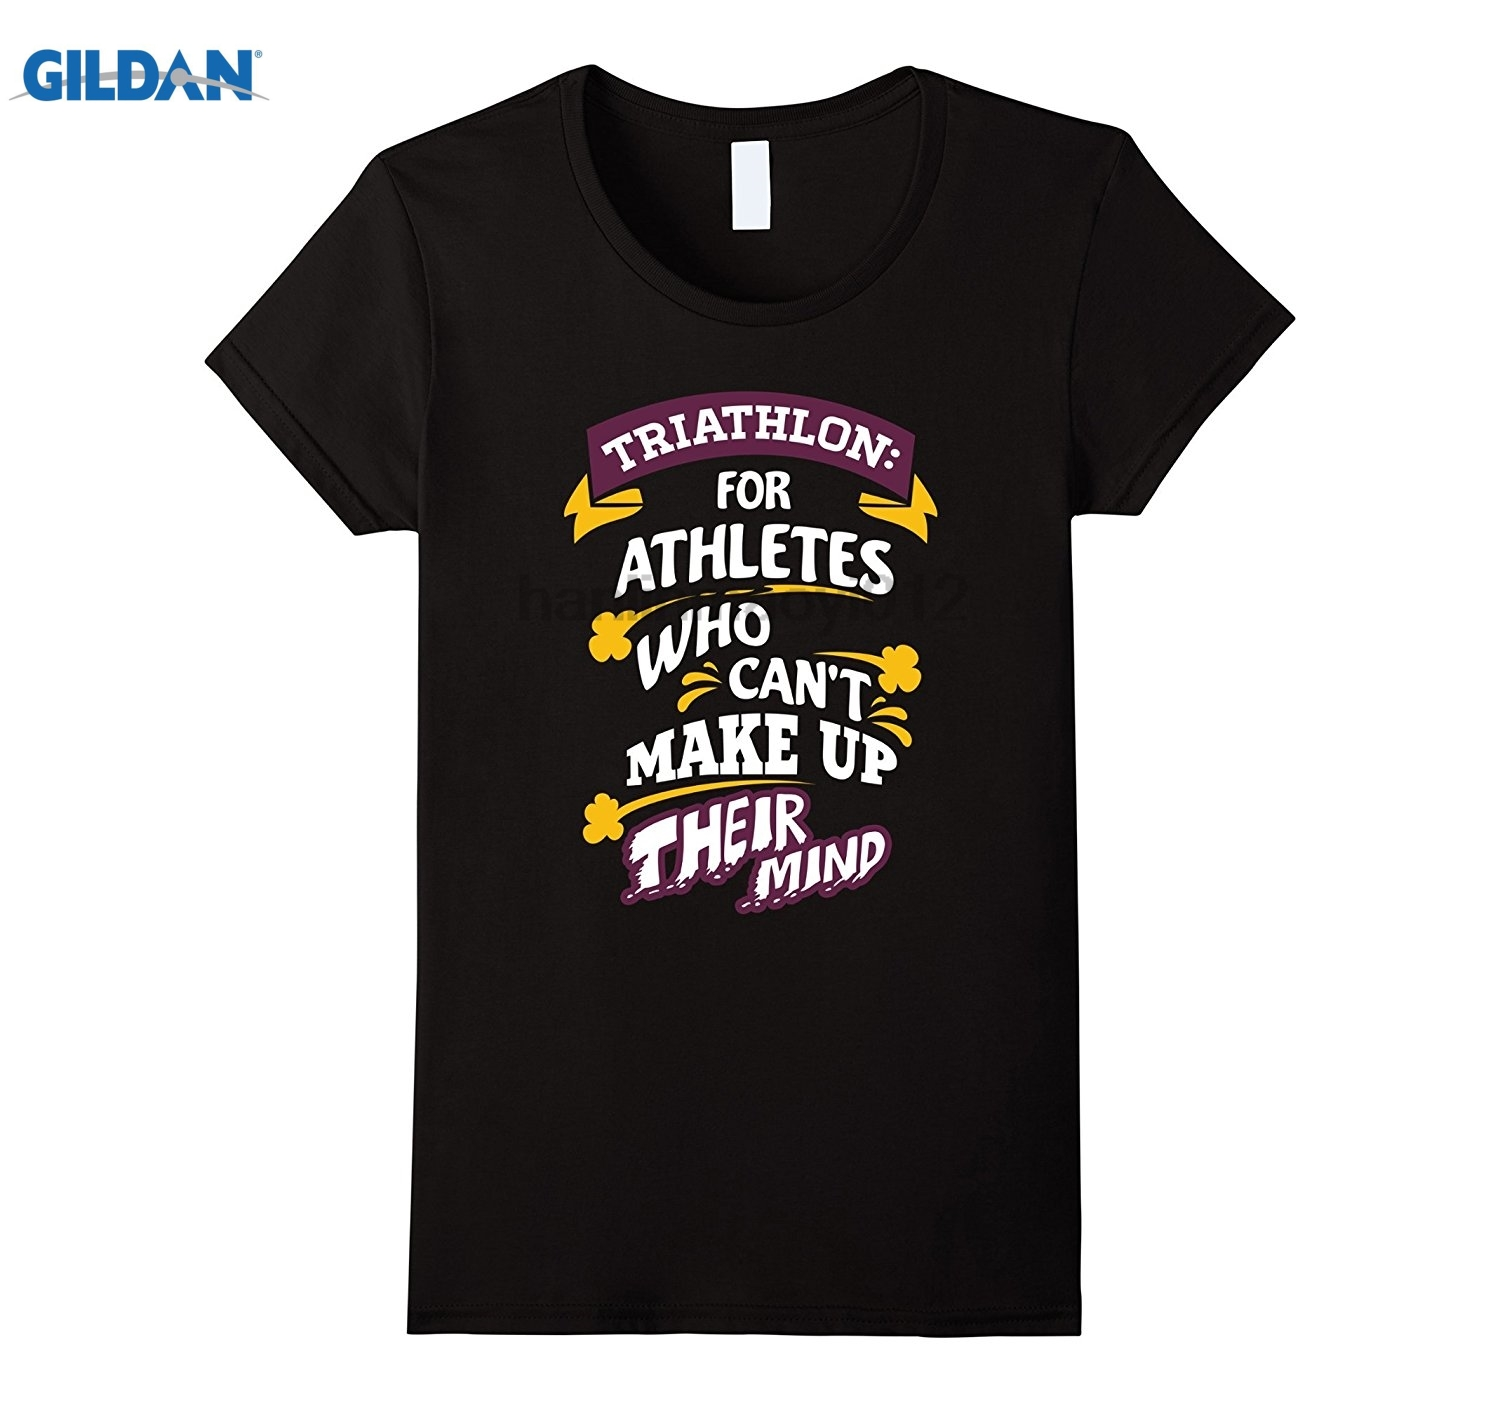 GILDAN Triathlon for Athletes Who Cant Triathlon Gift Idea T-Shirt Hot Womens T-shirt